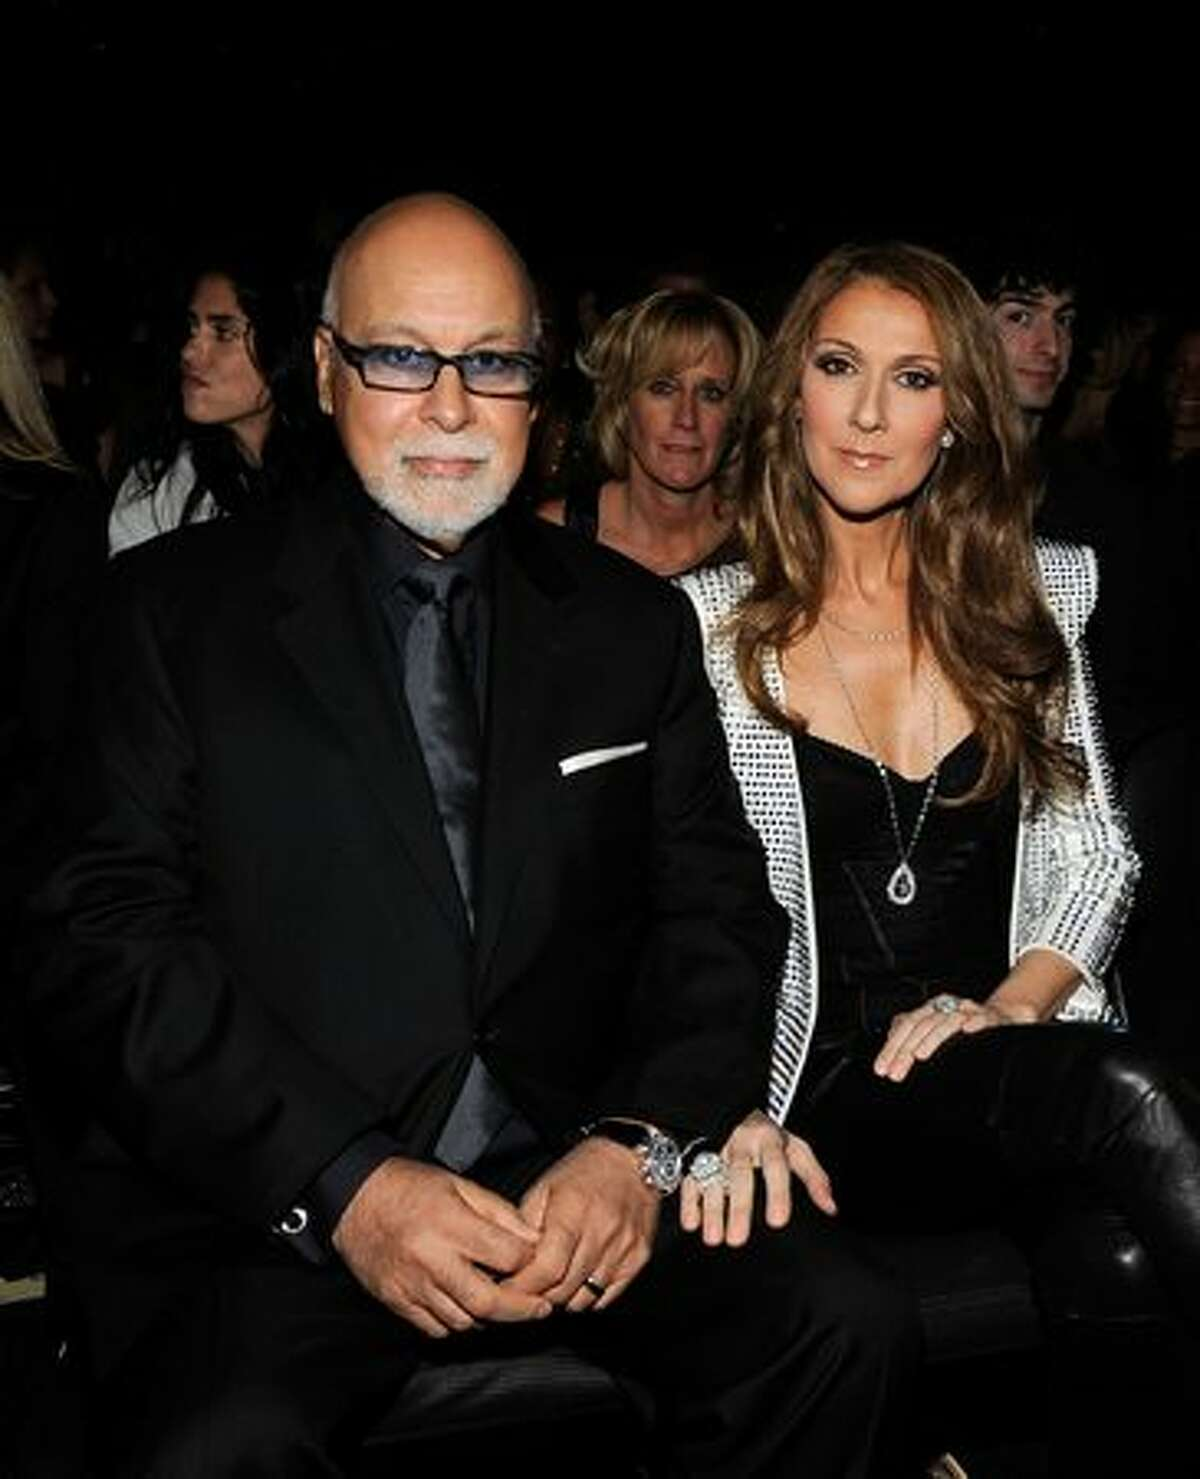 Singer Celine Dion (right) and husband Rene Angelil in the audience.